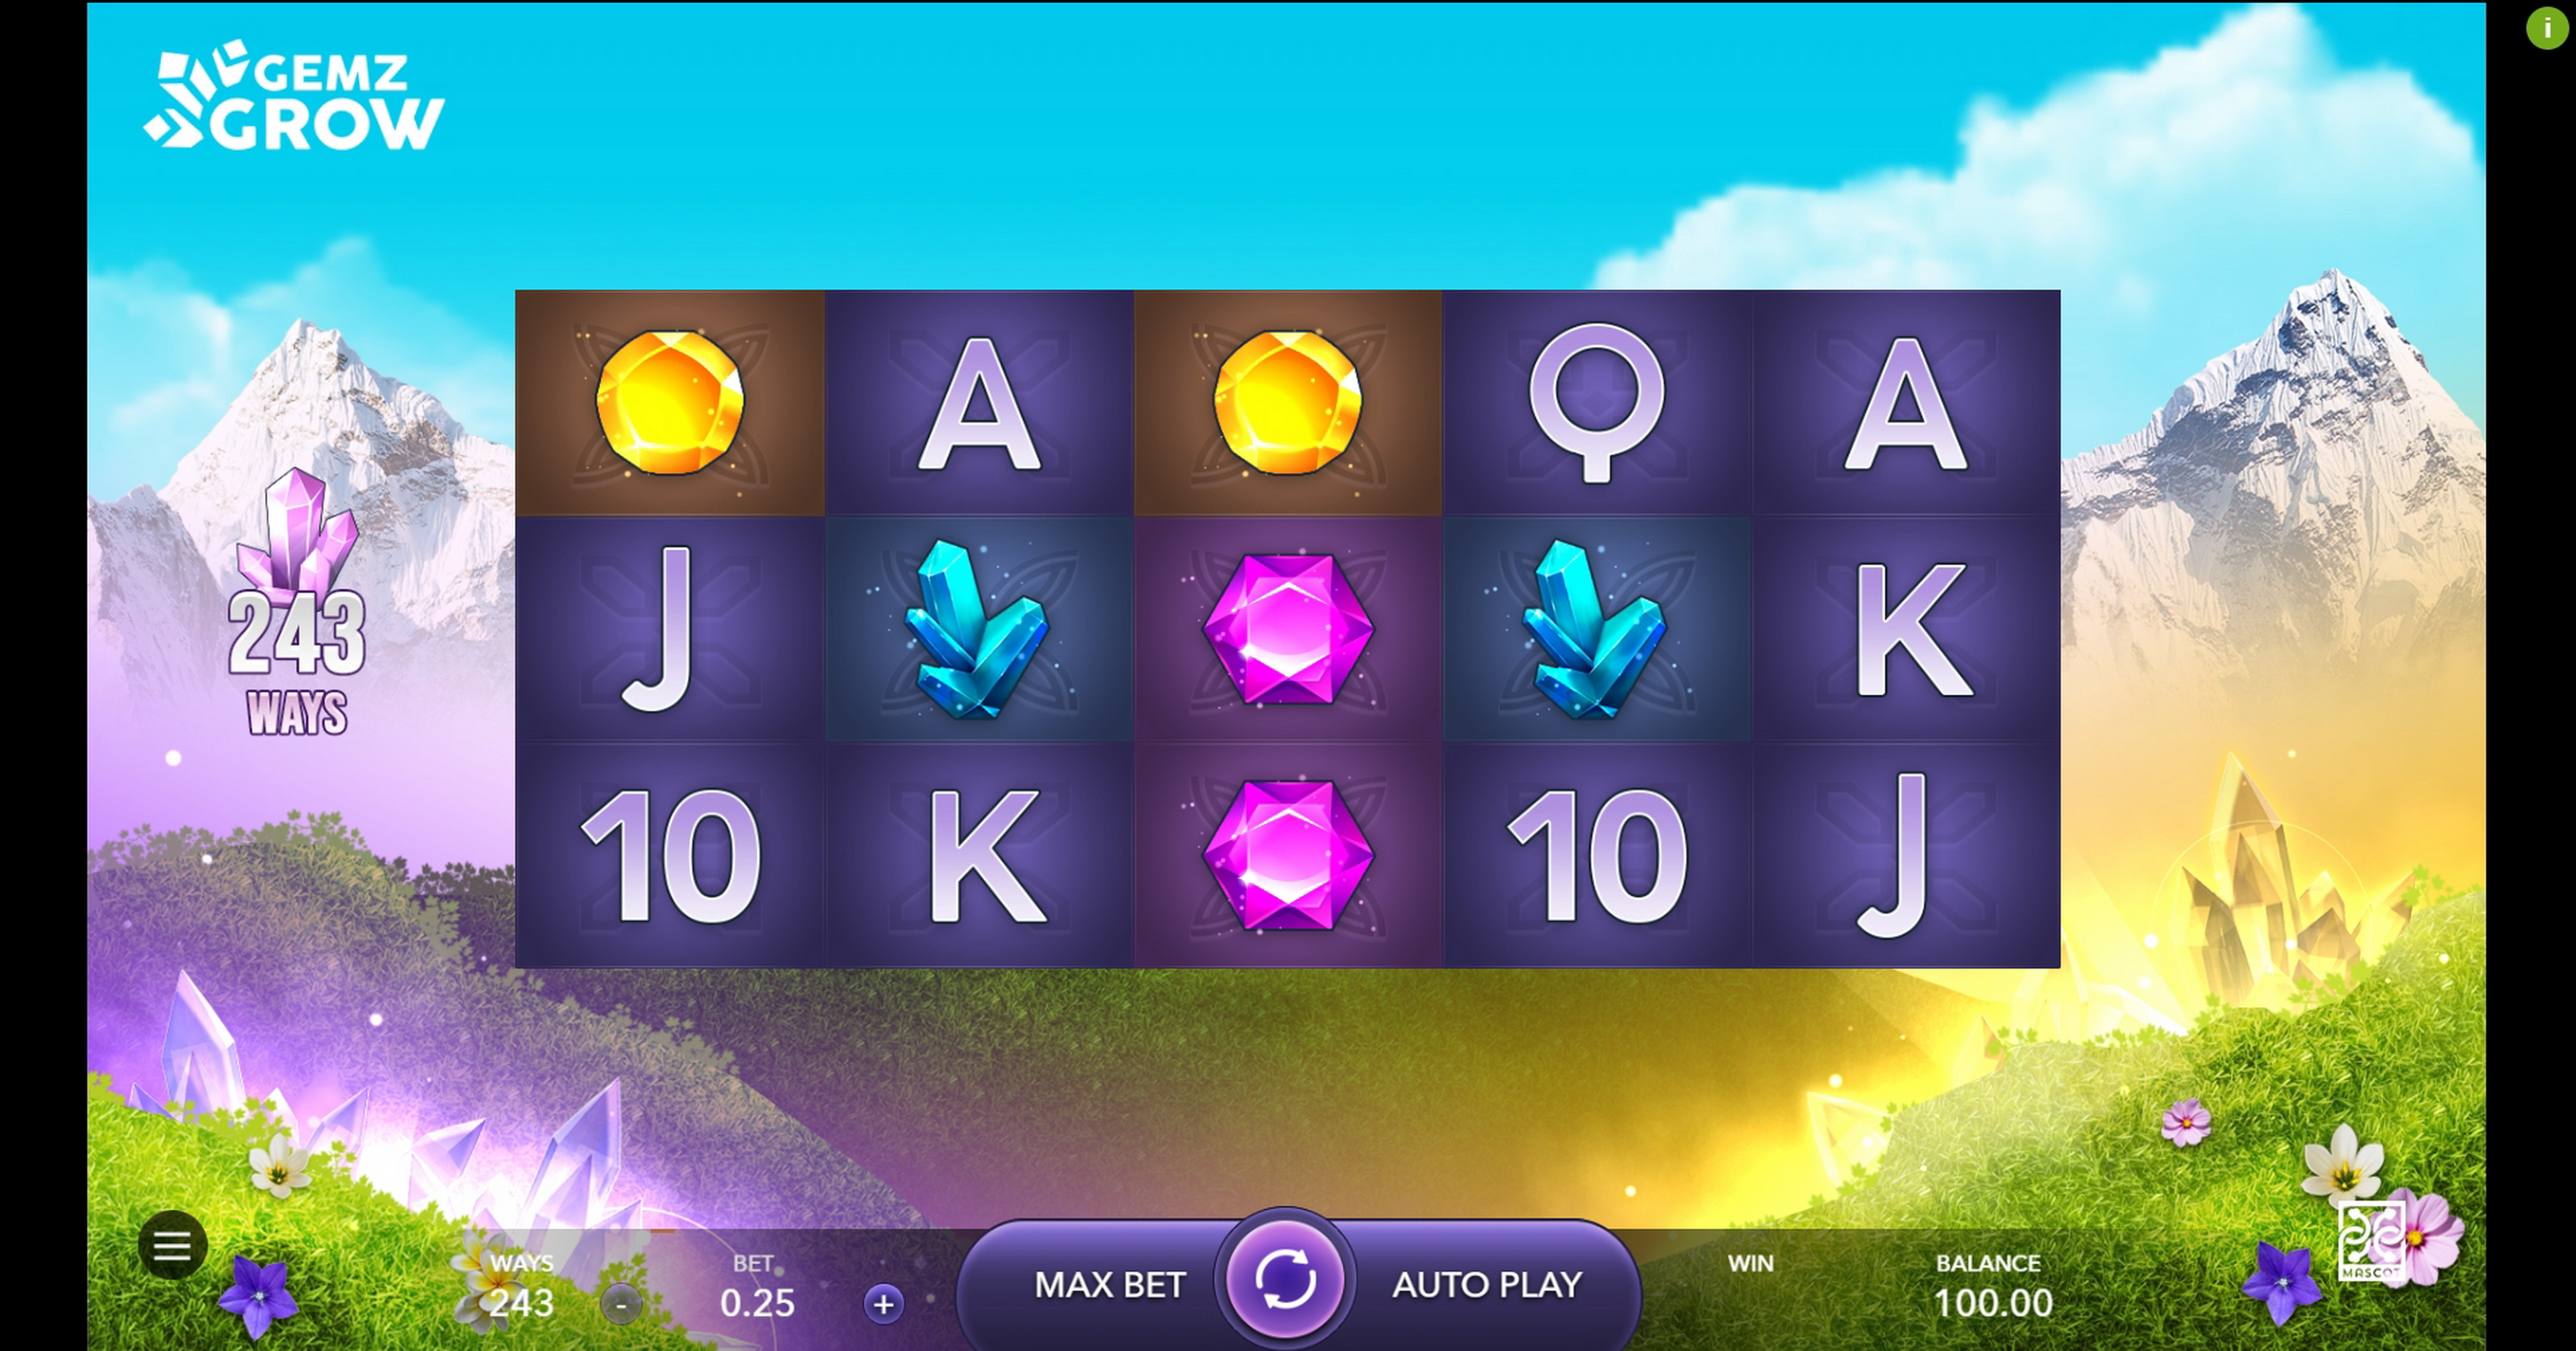 Reels in Gemz Grow Slot Game by Mascot Gaming